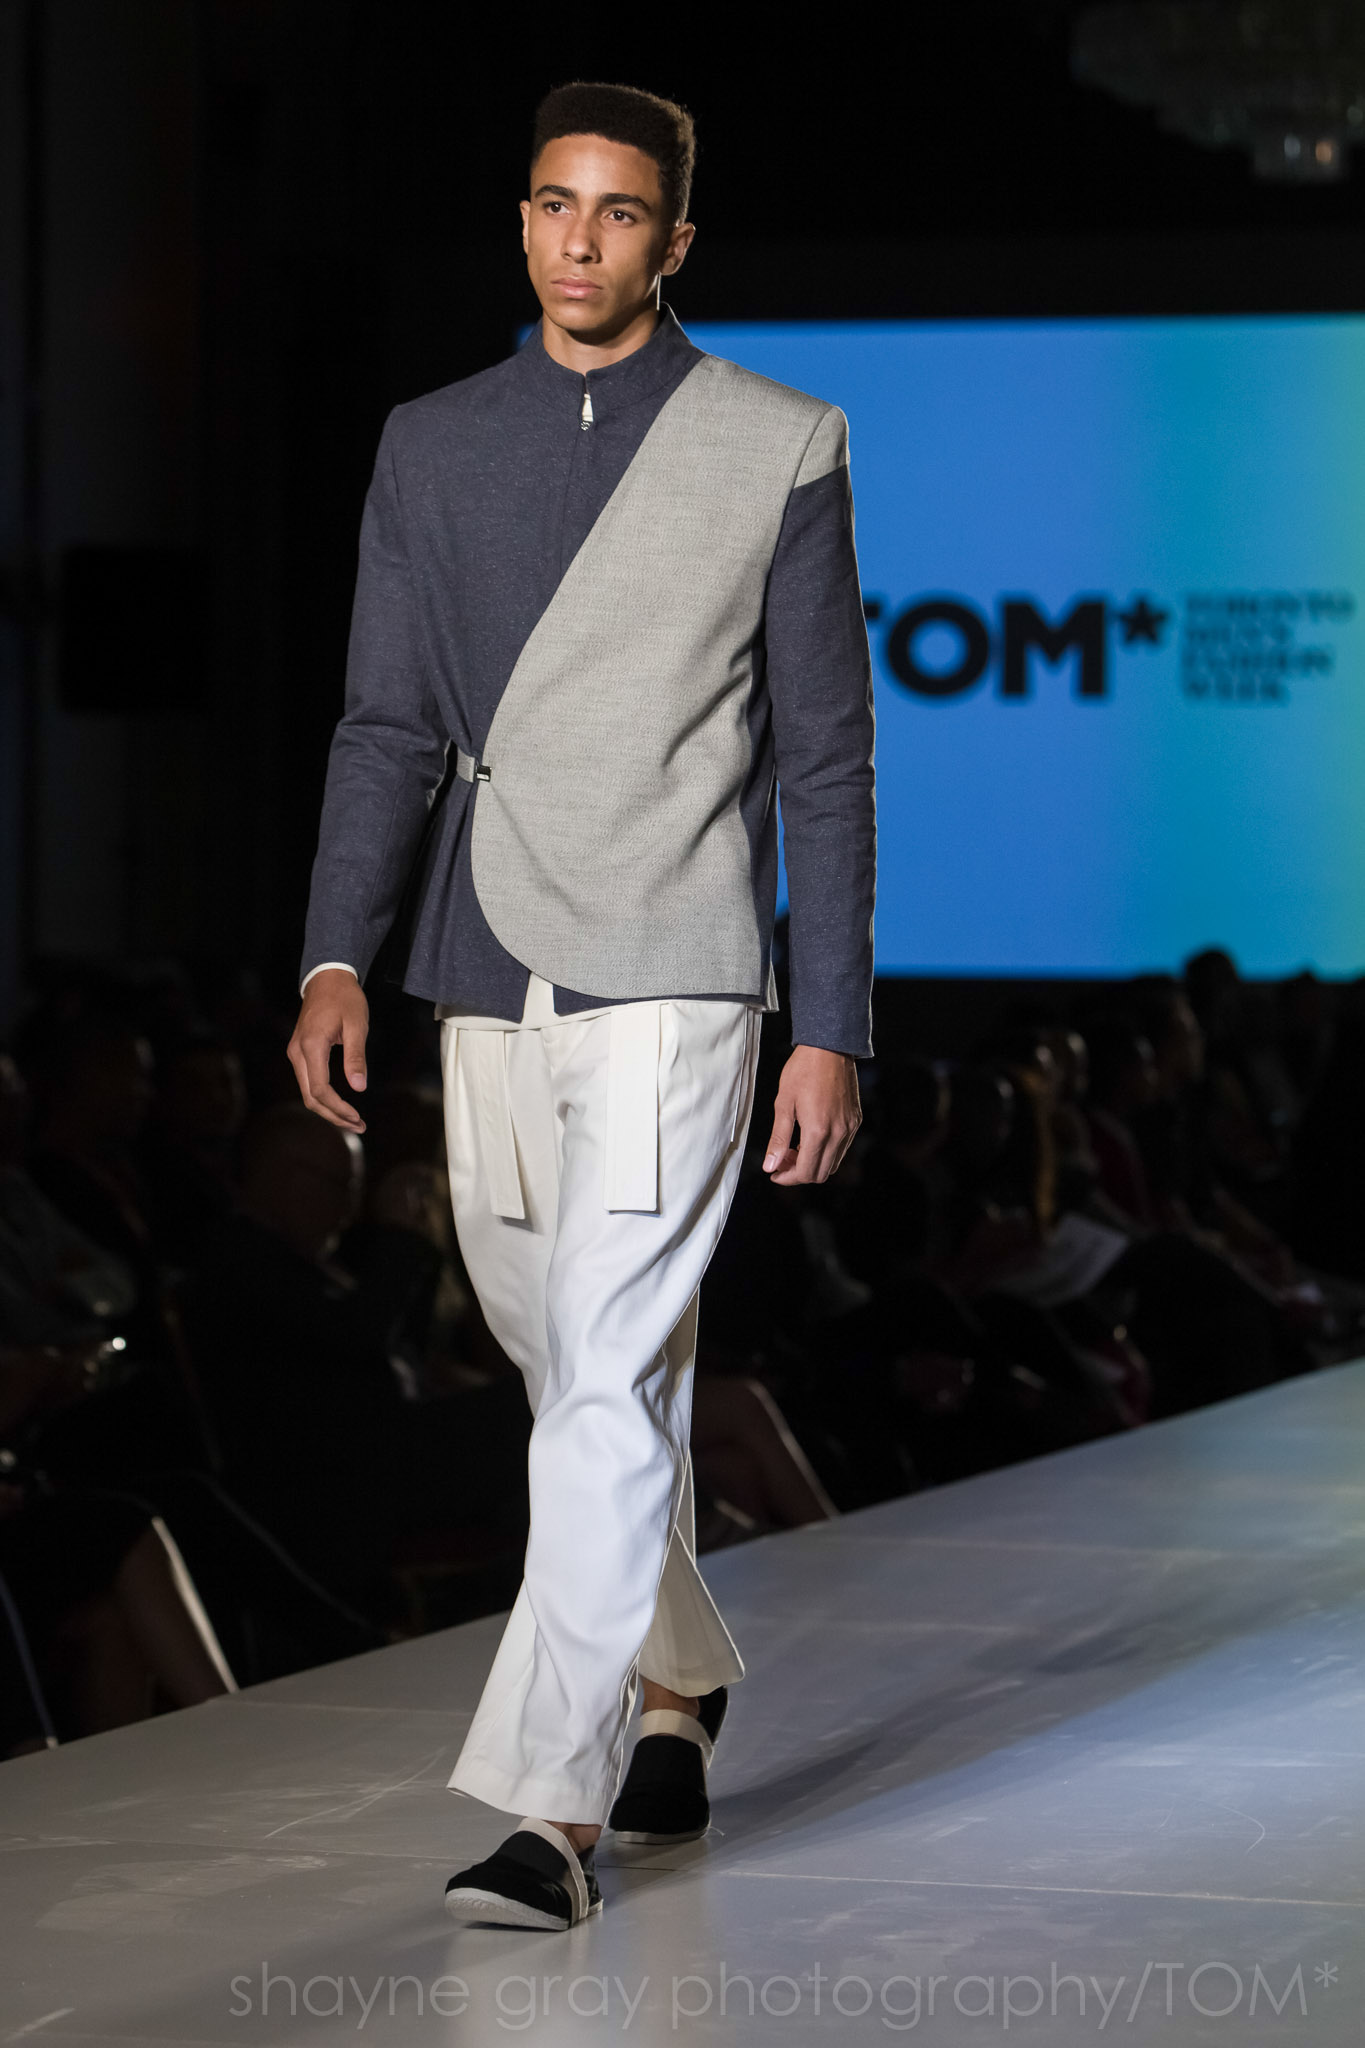 Shayne-Gray-Toronto-men's-fashion_week-TOM-christian-l'enfant-roi-6599.jpg